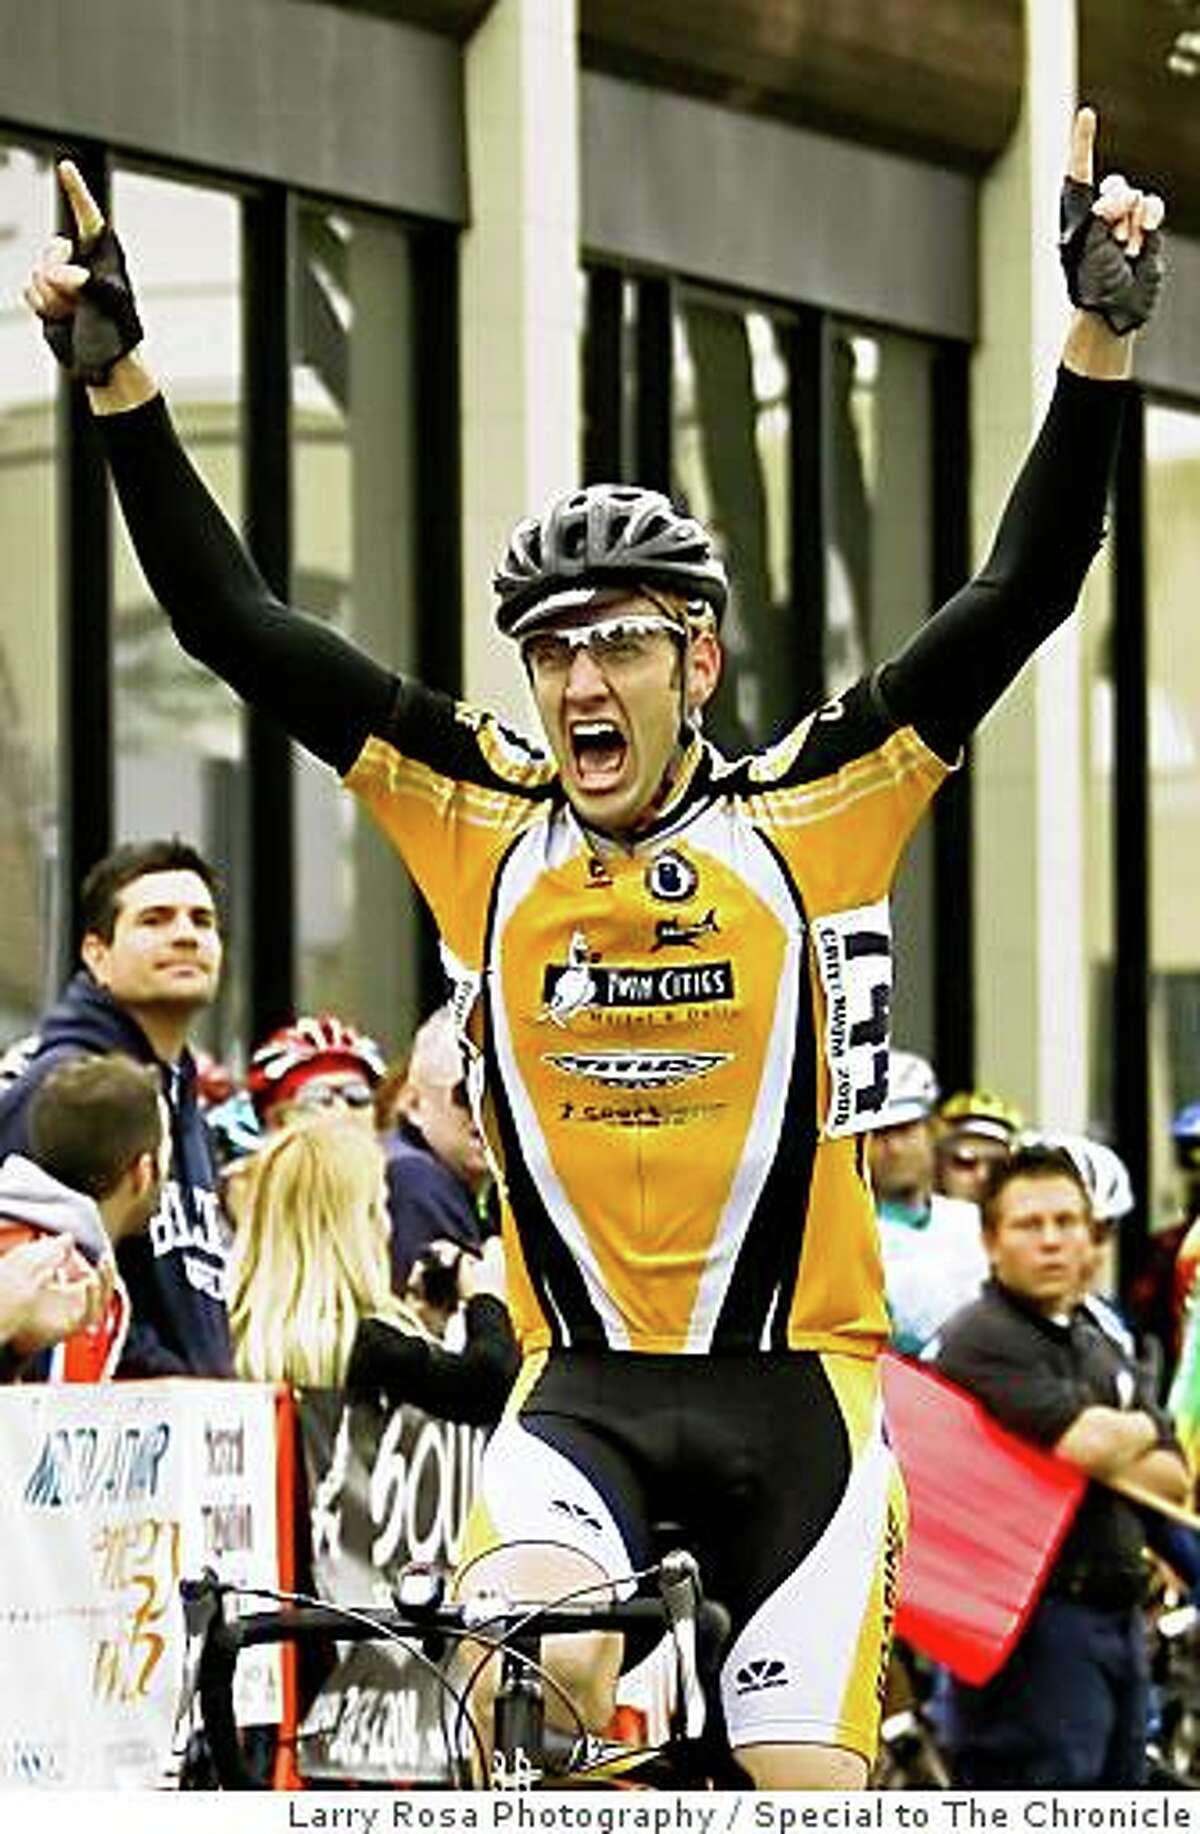 San Francisco cyclist Matt Peterson, who was struck and killed by a Santa Clara Sheriff's cruiser outside Cupertino, Calif., on Sunday, March 9, 2008. The photo is of Peterson crossing the finish line at the Merco Credit Union Downtown Grand Prix, held in Merced, Calif., on Saturday March 1, 2008 Photo by Larry Rosa / Special to The Chronicle